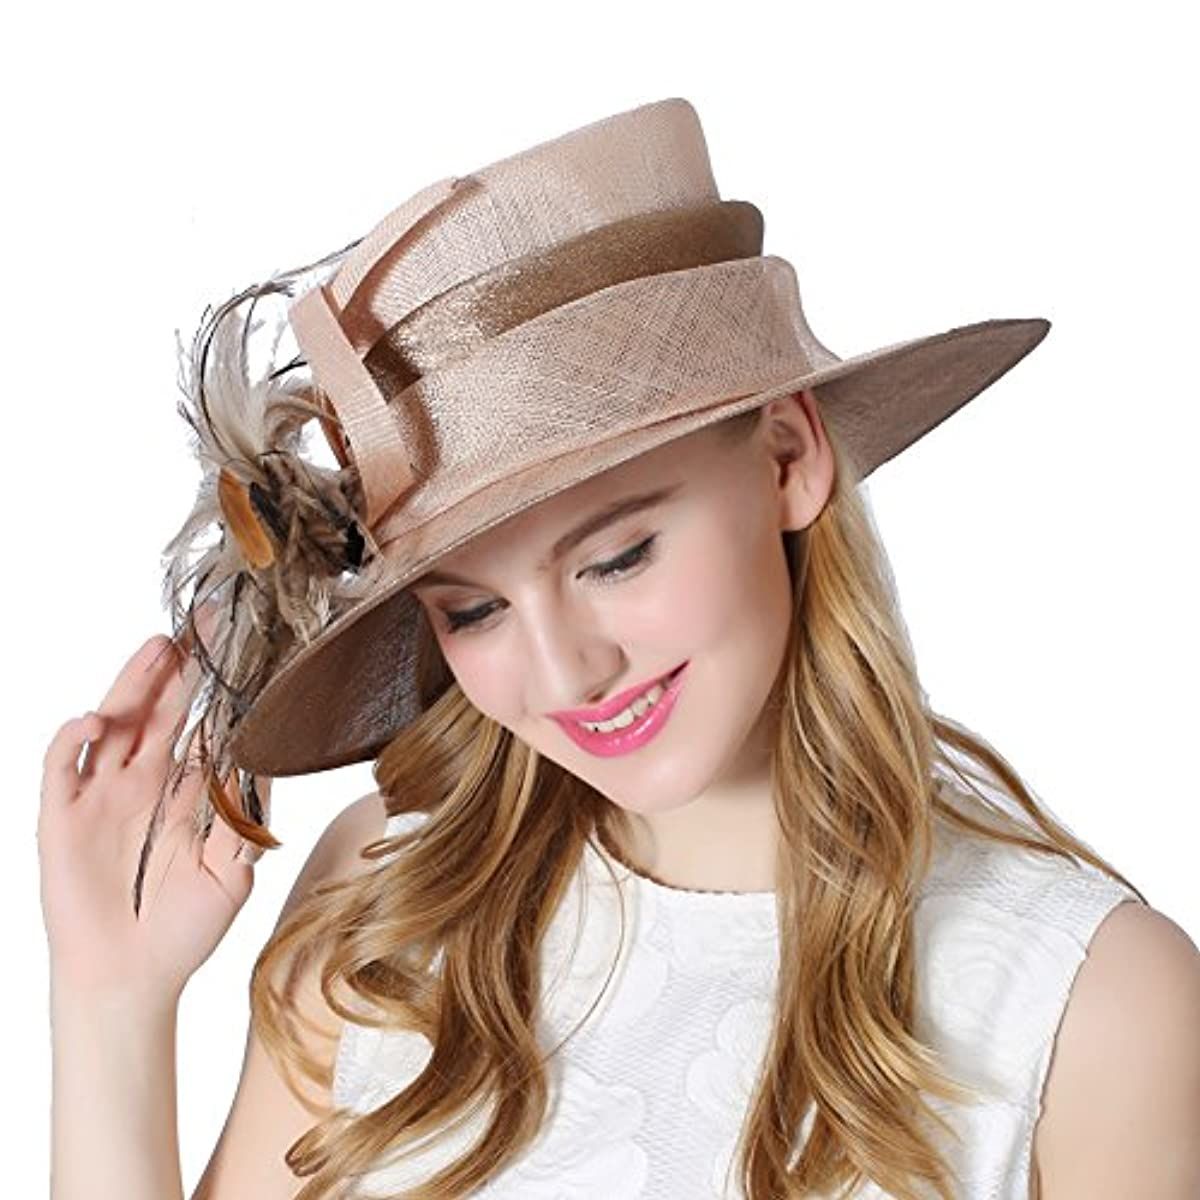 Details about Koola s hats Champagne Brown 3 Layers Sinamay Kentucky Derby  Church Sun Summer H 033319ab81bf